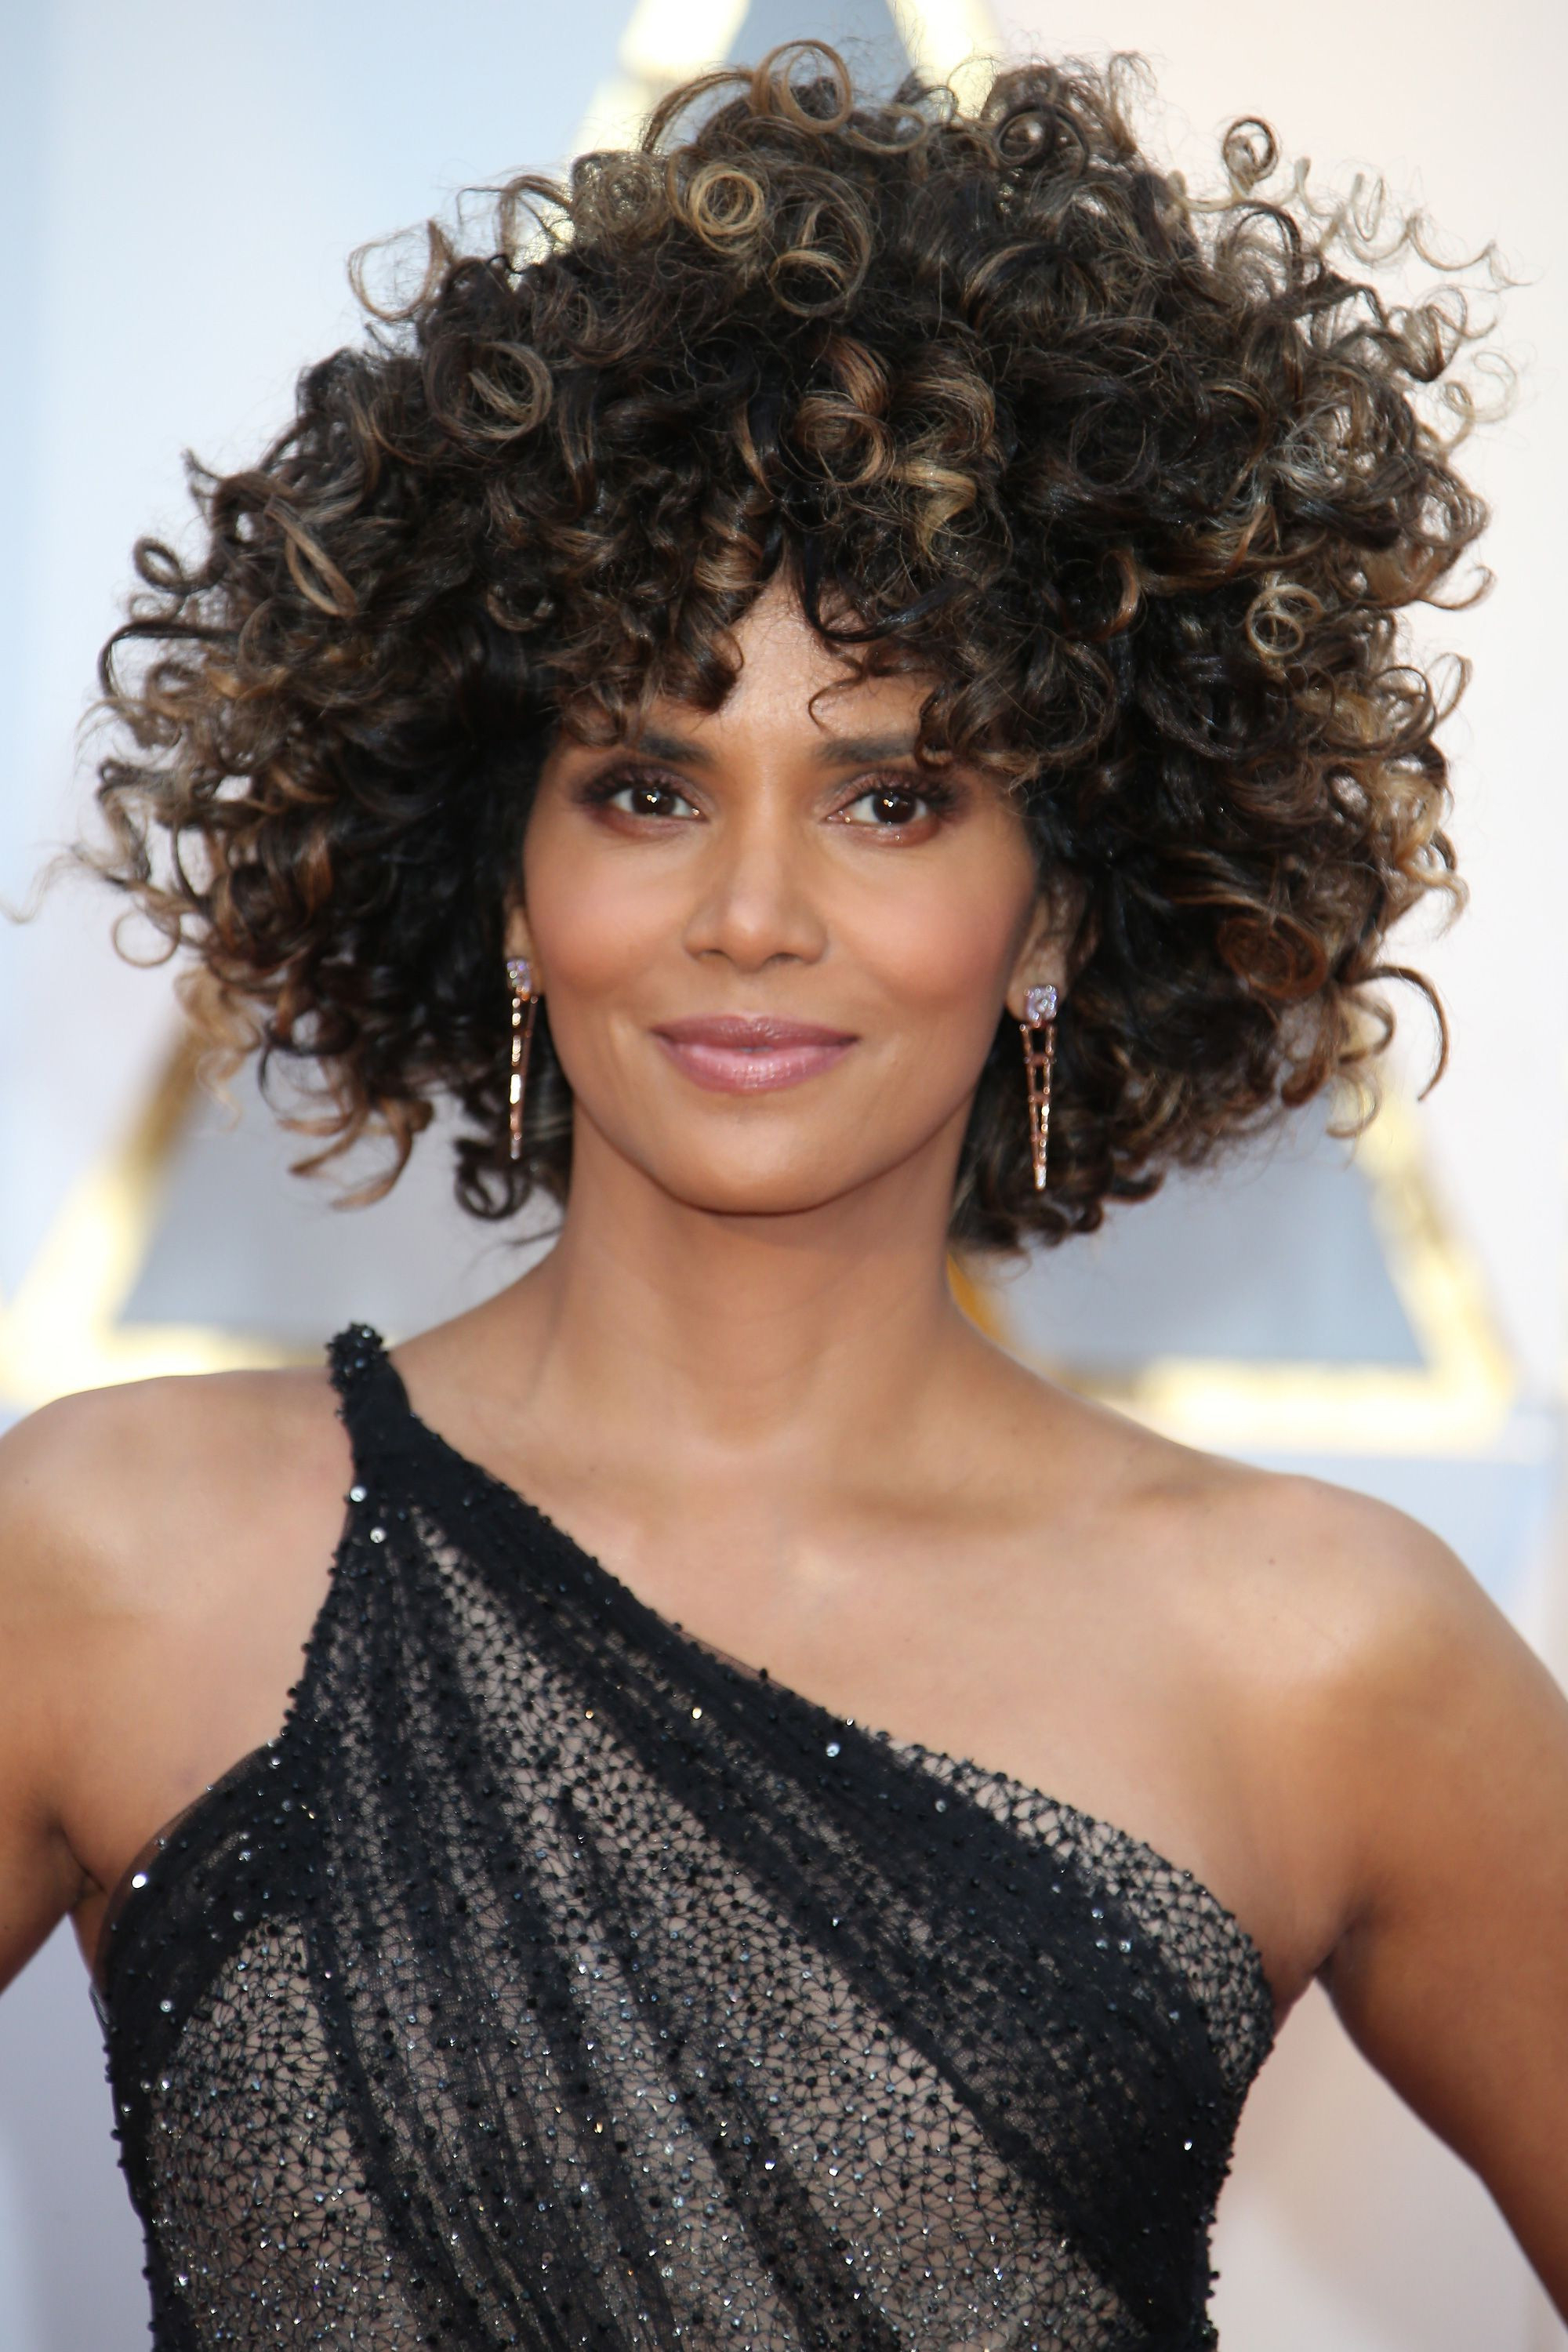 Easy Short Hairstyles For Thick Curly Hair New 42 Easy Curly With Regard To Short Haircuts For Very Curly Hair (View 20 of 25)